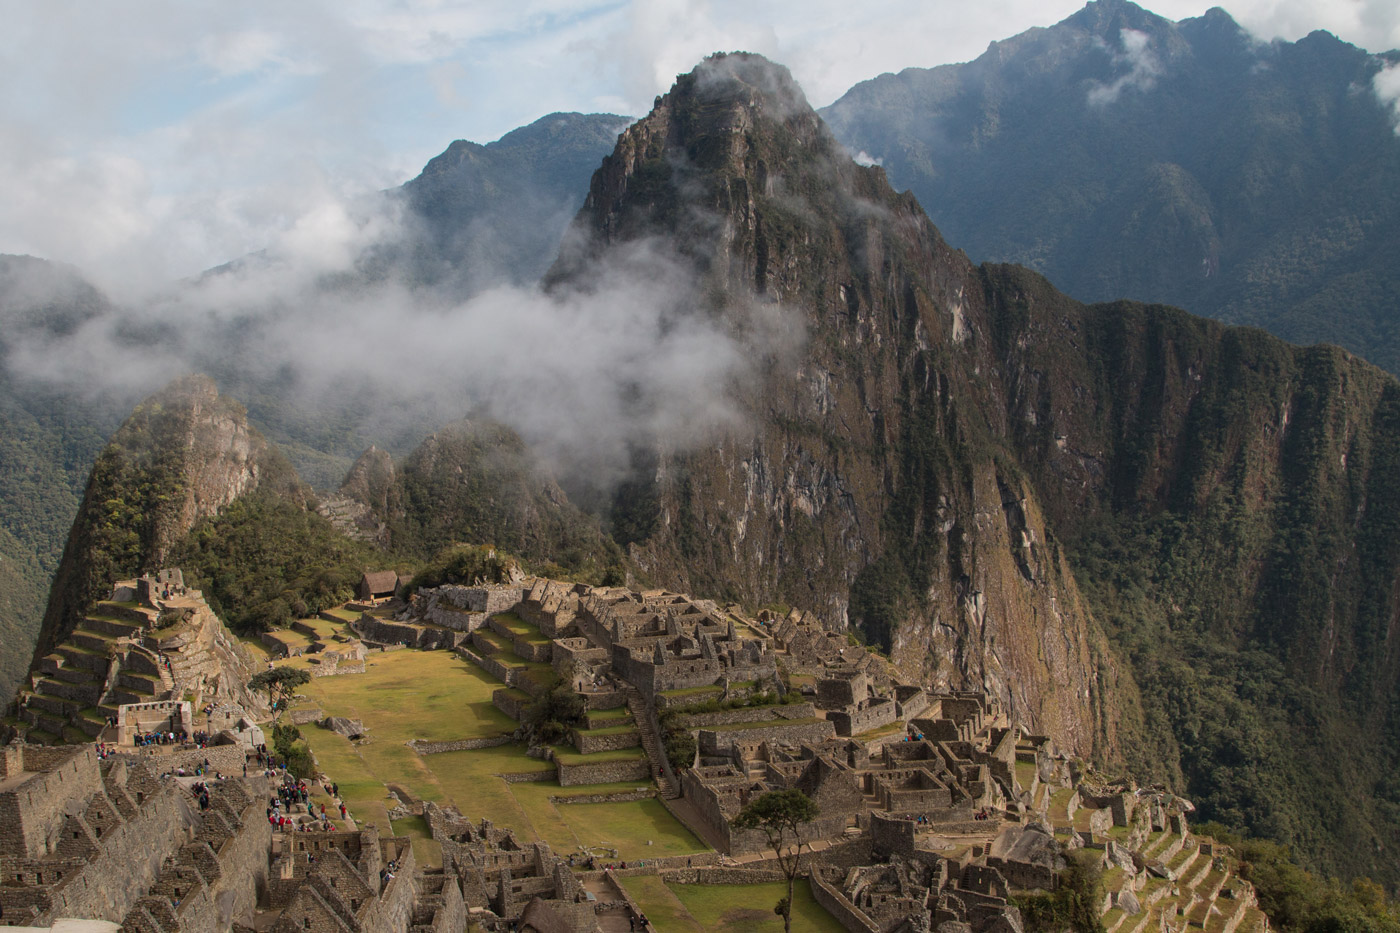 Postcard shot of Machu Picchu